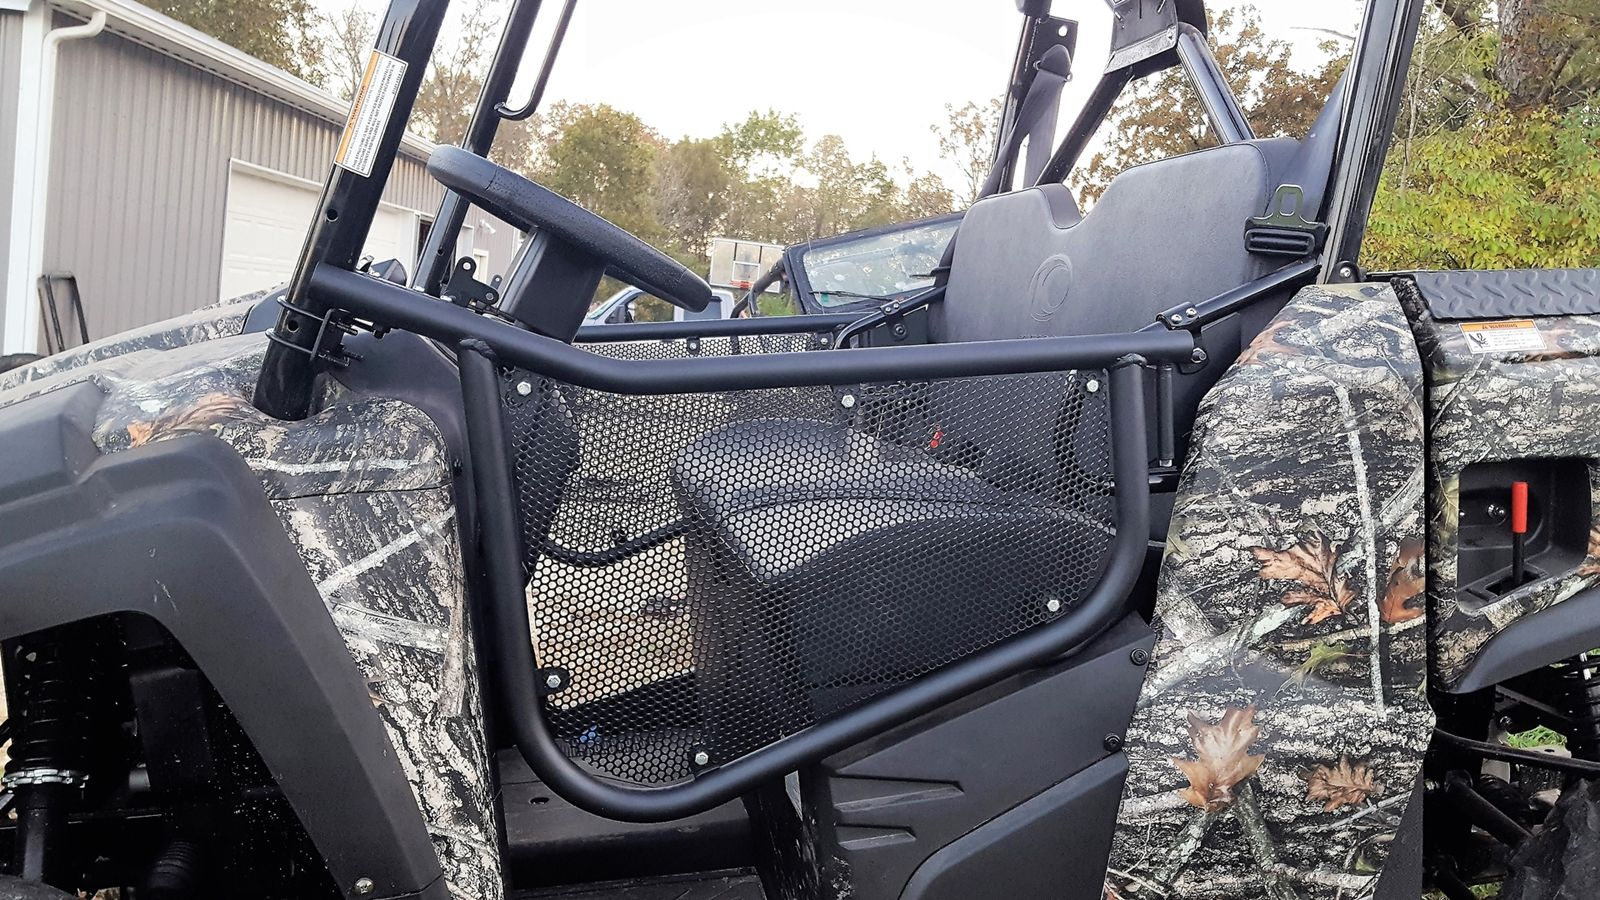 20in FOR Yamaha Rhino  Can Am Commander Maverick Wildcat 1000 Side By Side RV